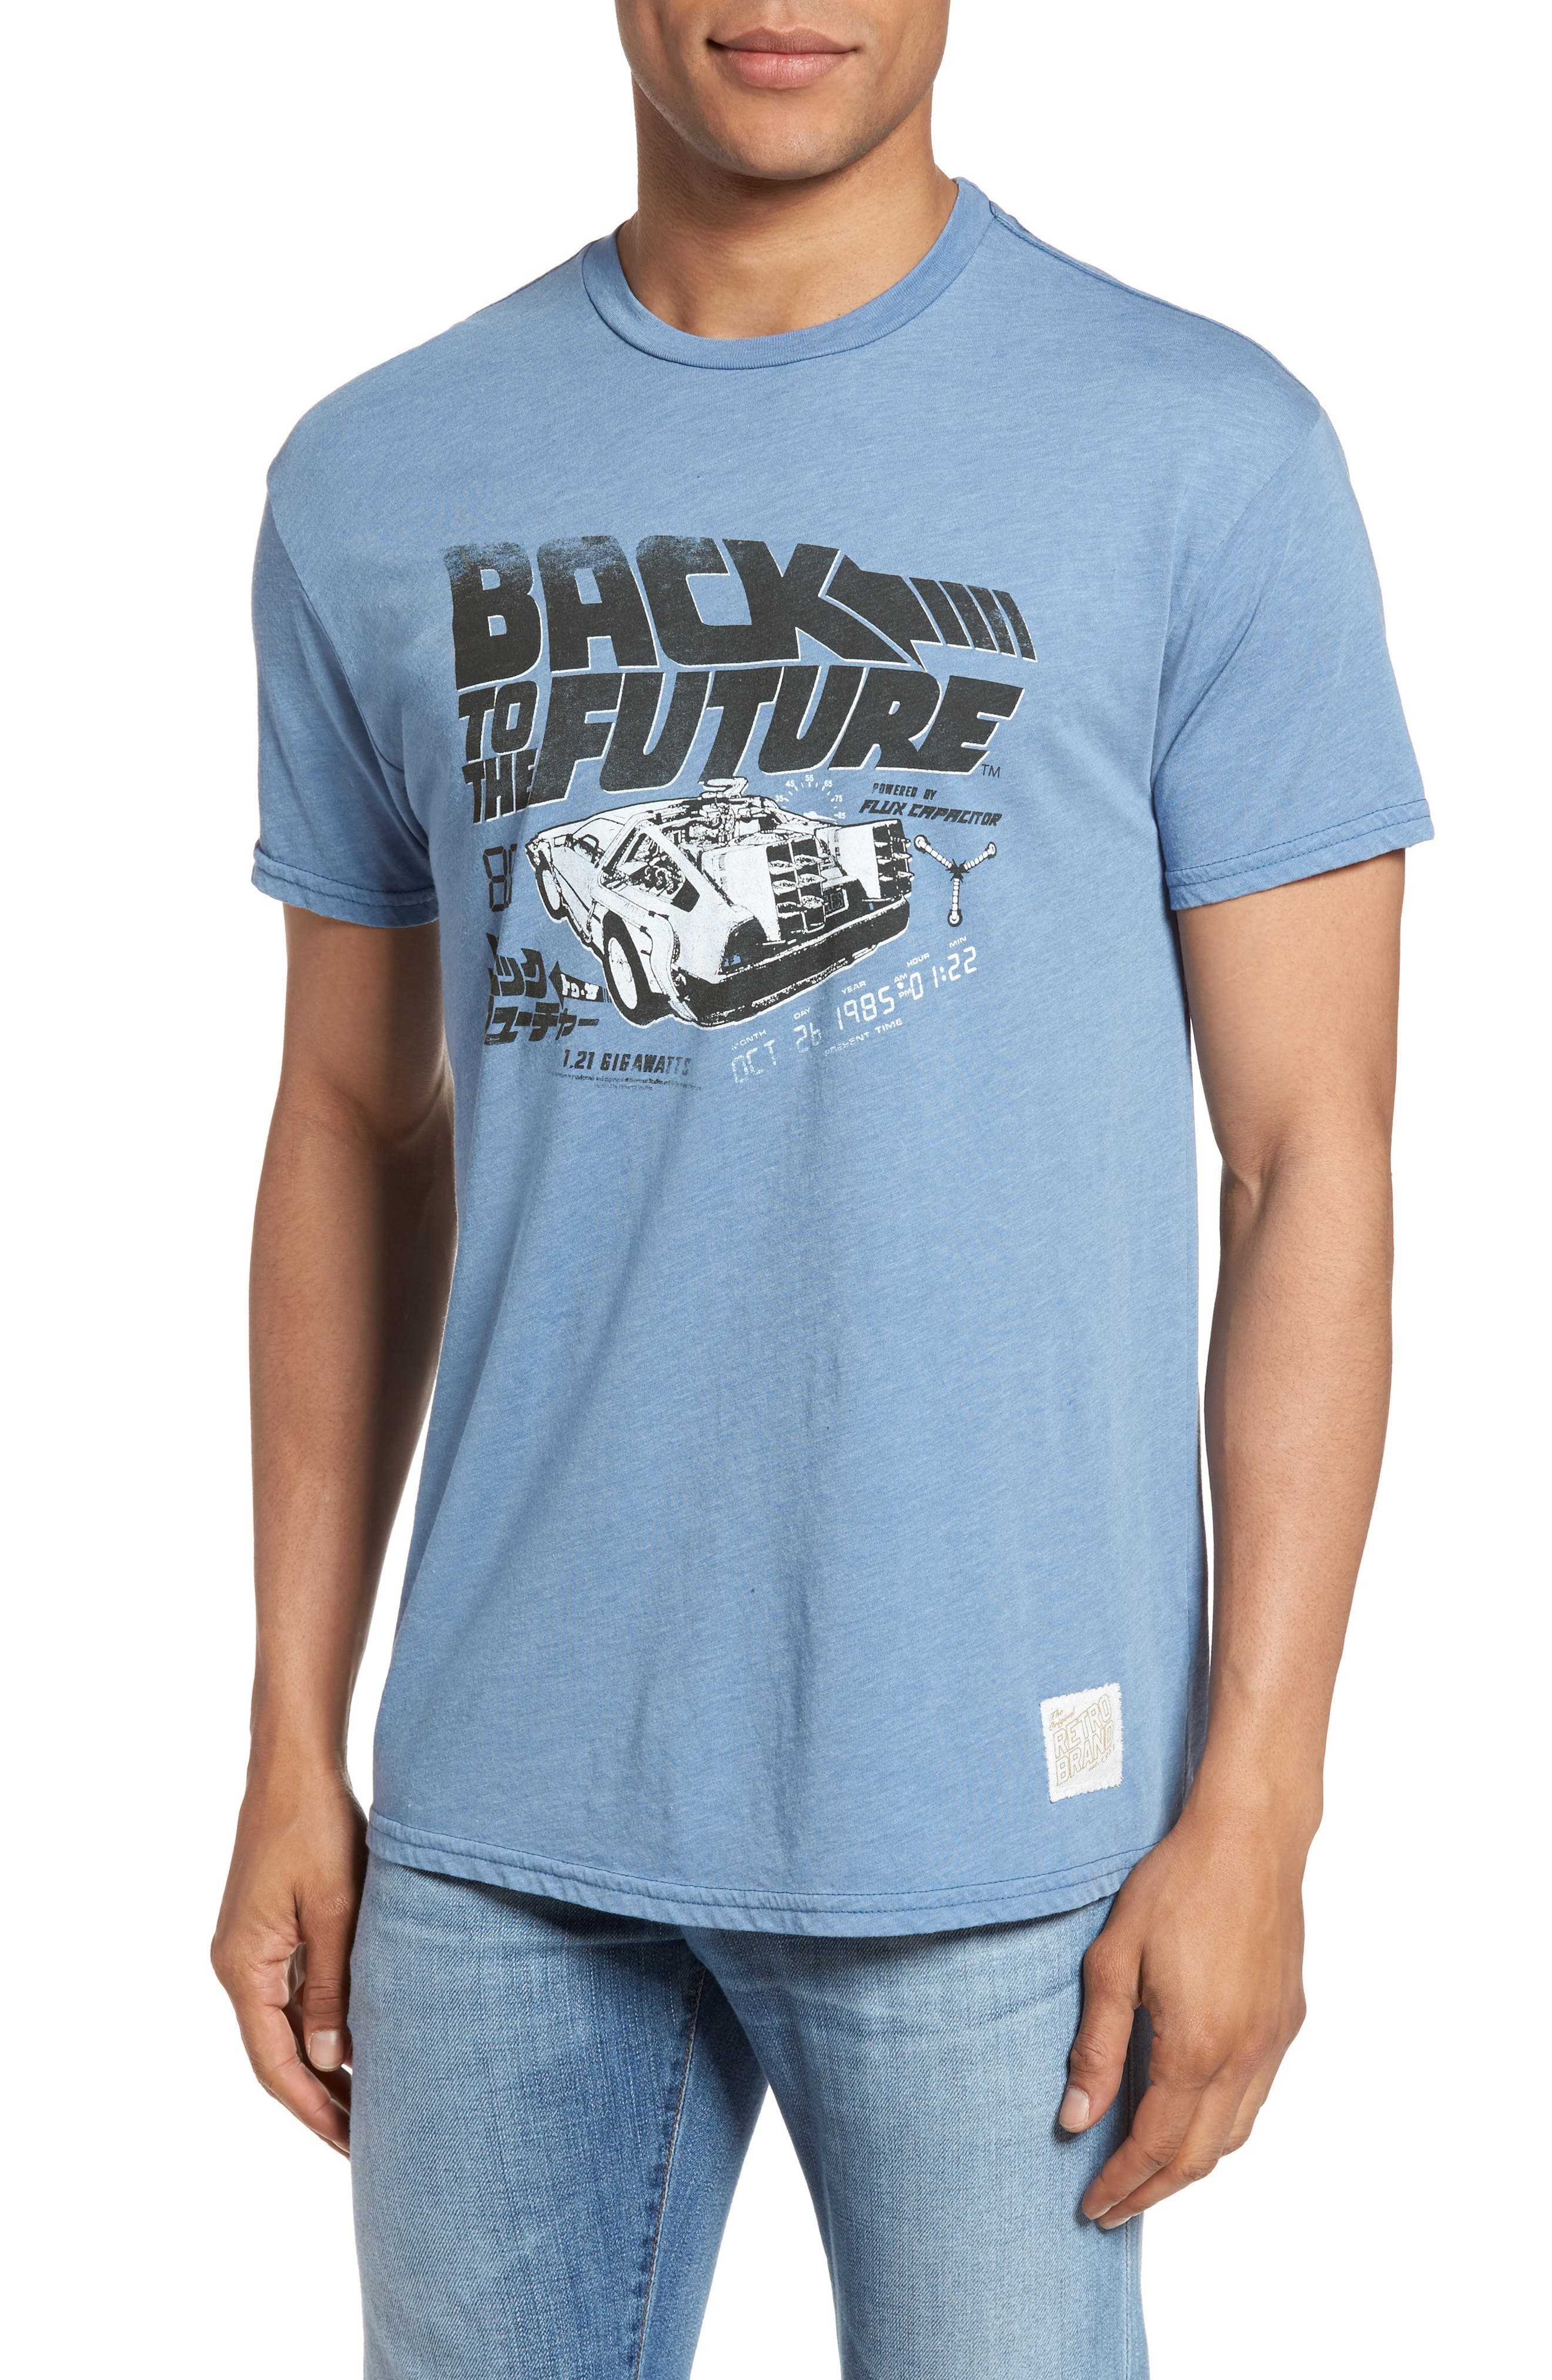 Back to the Future Graphic T-Shirt,                             Main thumbnail 1, color,                             400